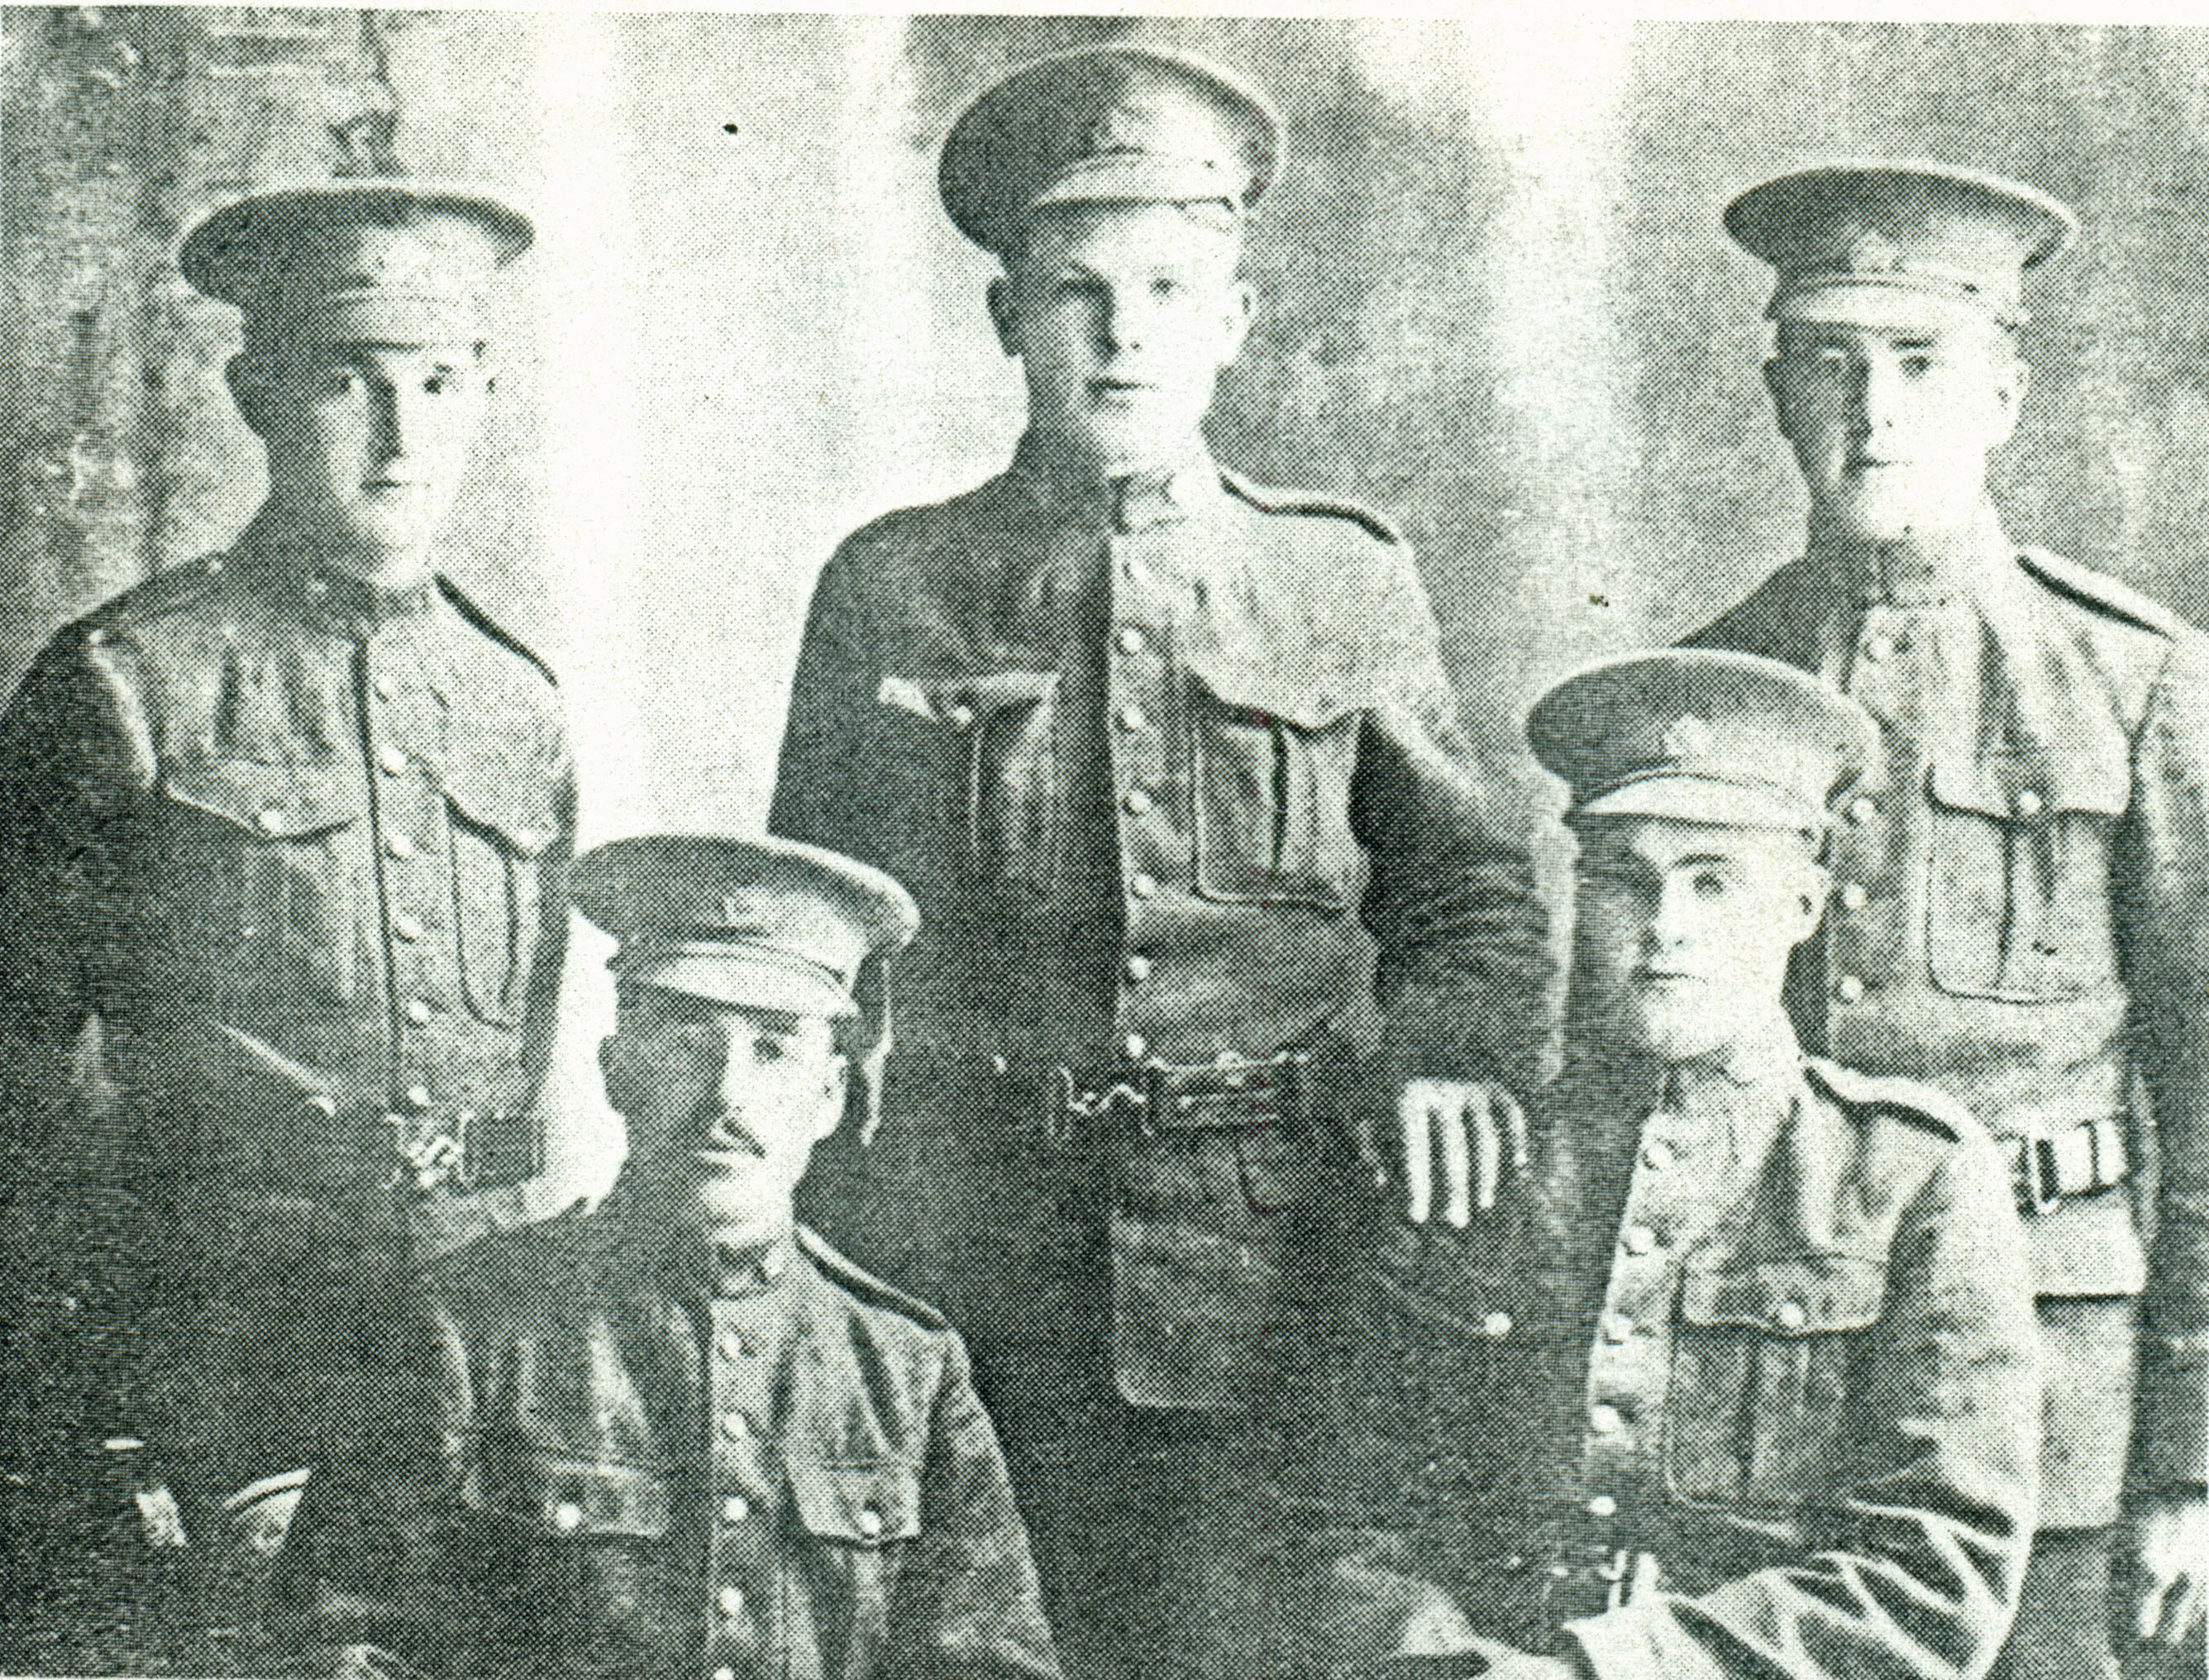 Group Photo– Pte Roy Winfield Feltis is the soldier in the back row on the right side. The photo is from History of Derby Township  1839 to 1972 published by the Township.  Others in the photo back row: Gus King, Jess Sargeant, Roy Feltis front: Eric Hilsden, George Beckett